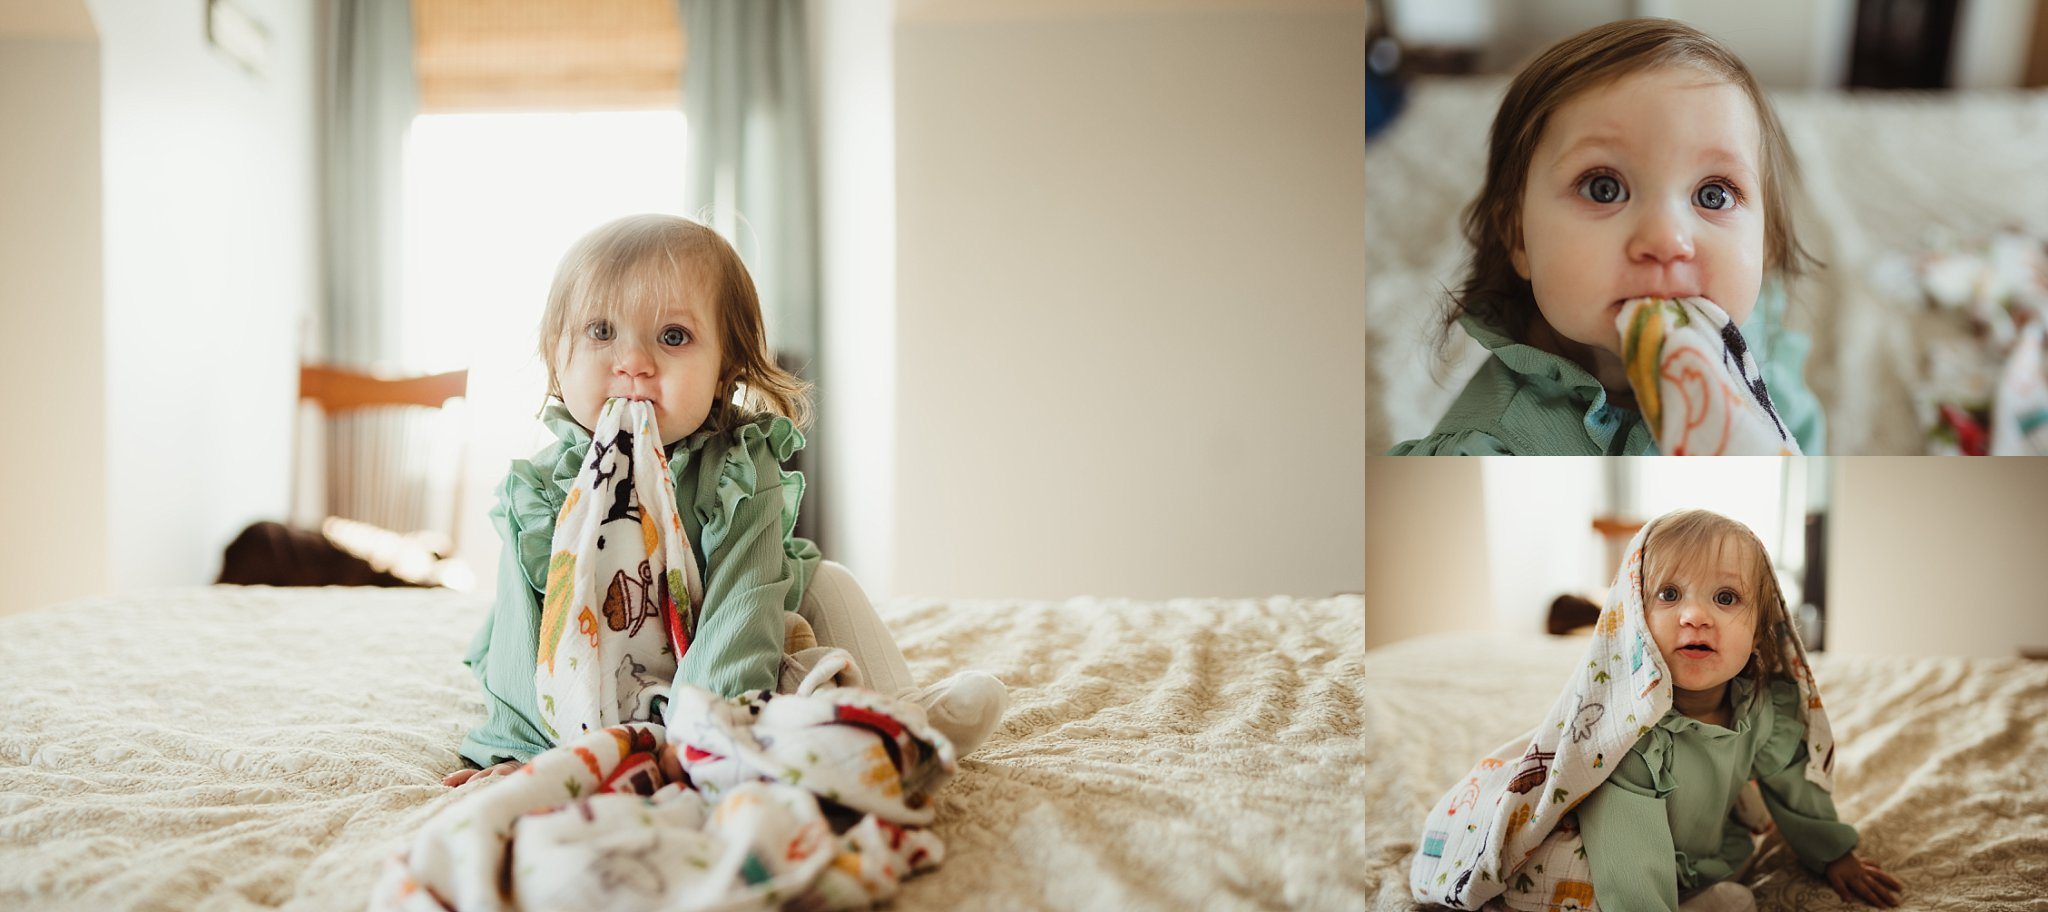 Baby sits with tula blanket at family photo session.